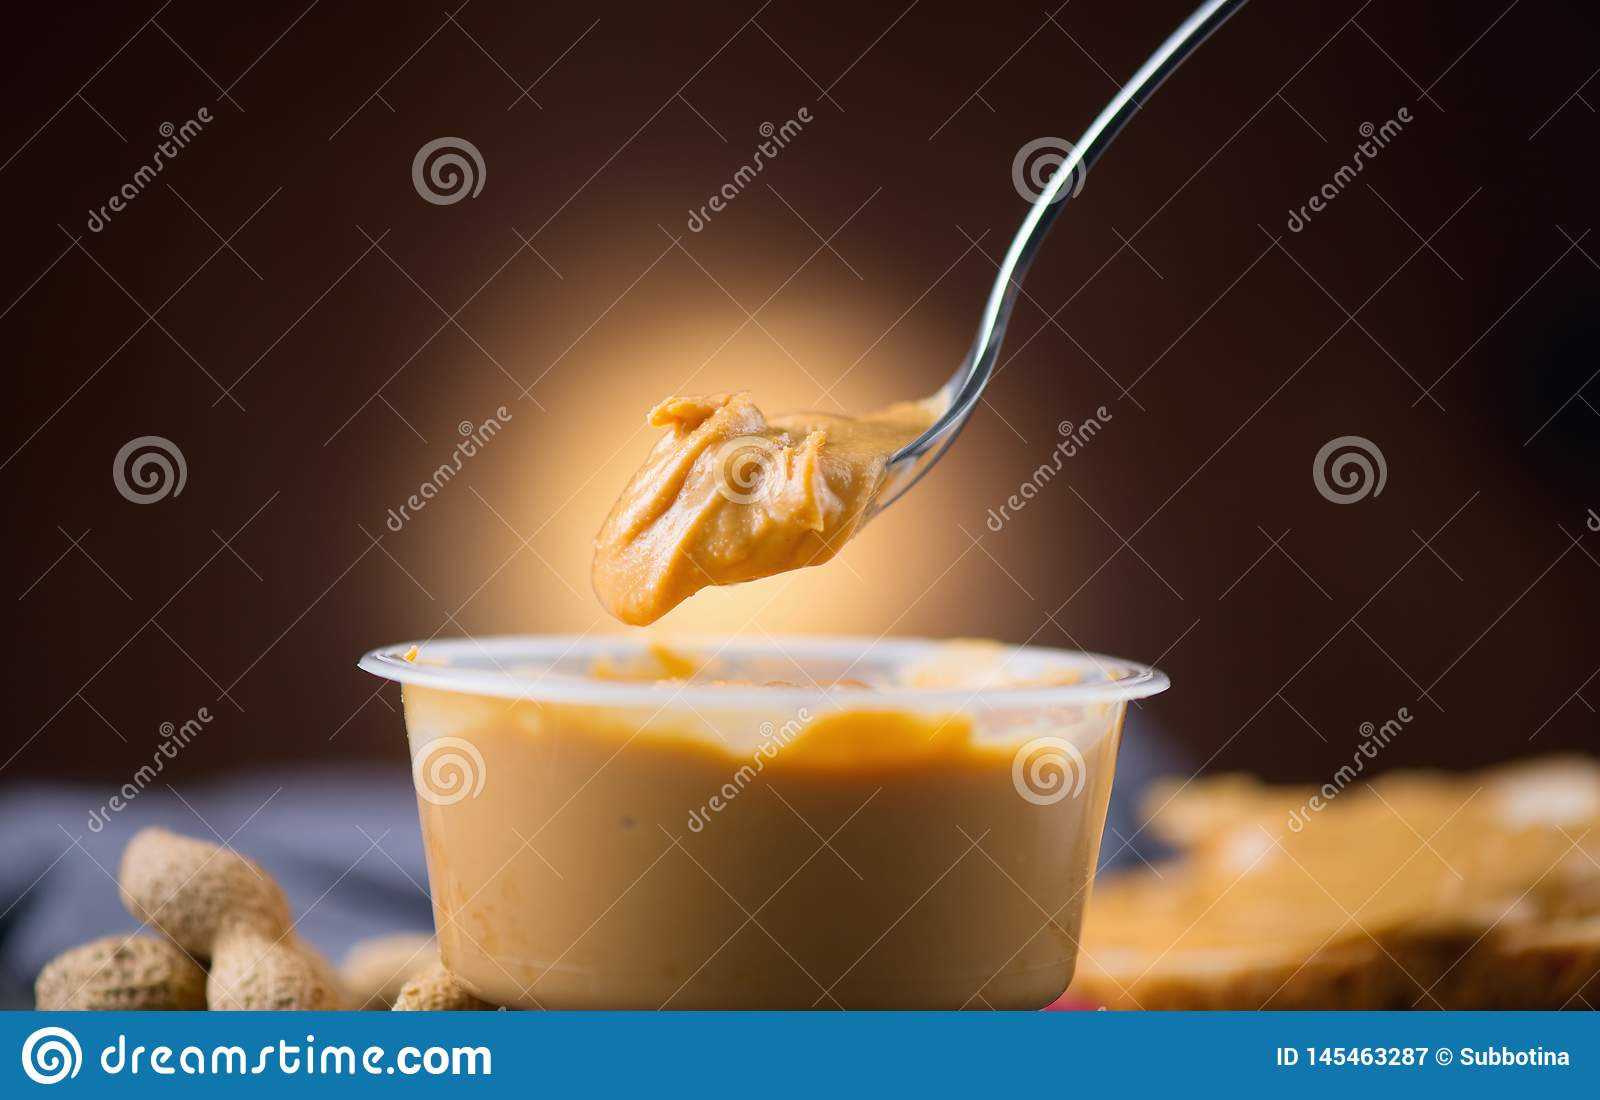 Peanut butter. Creamy smooth peanut butter in a jar on a table. Spoon of Natural nutrition. Organic food